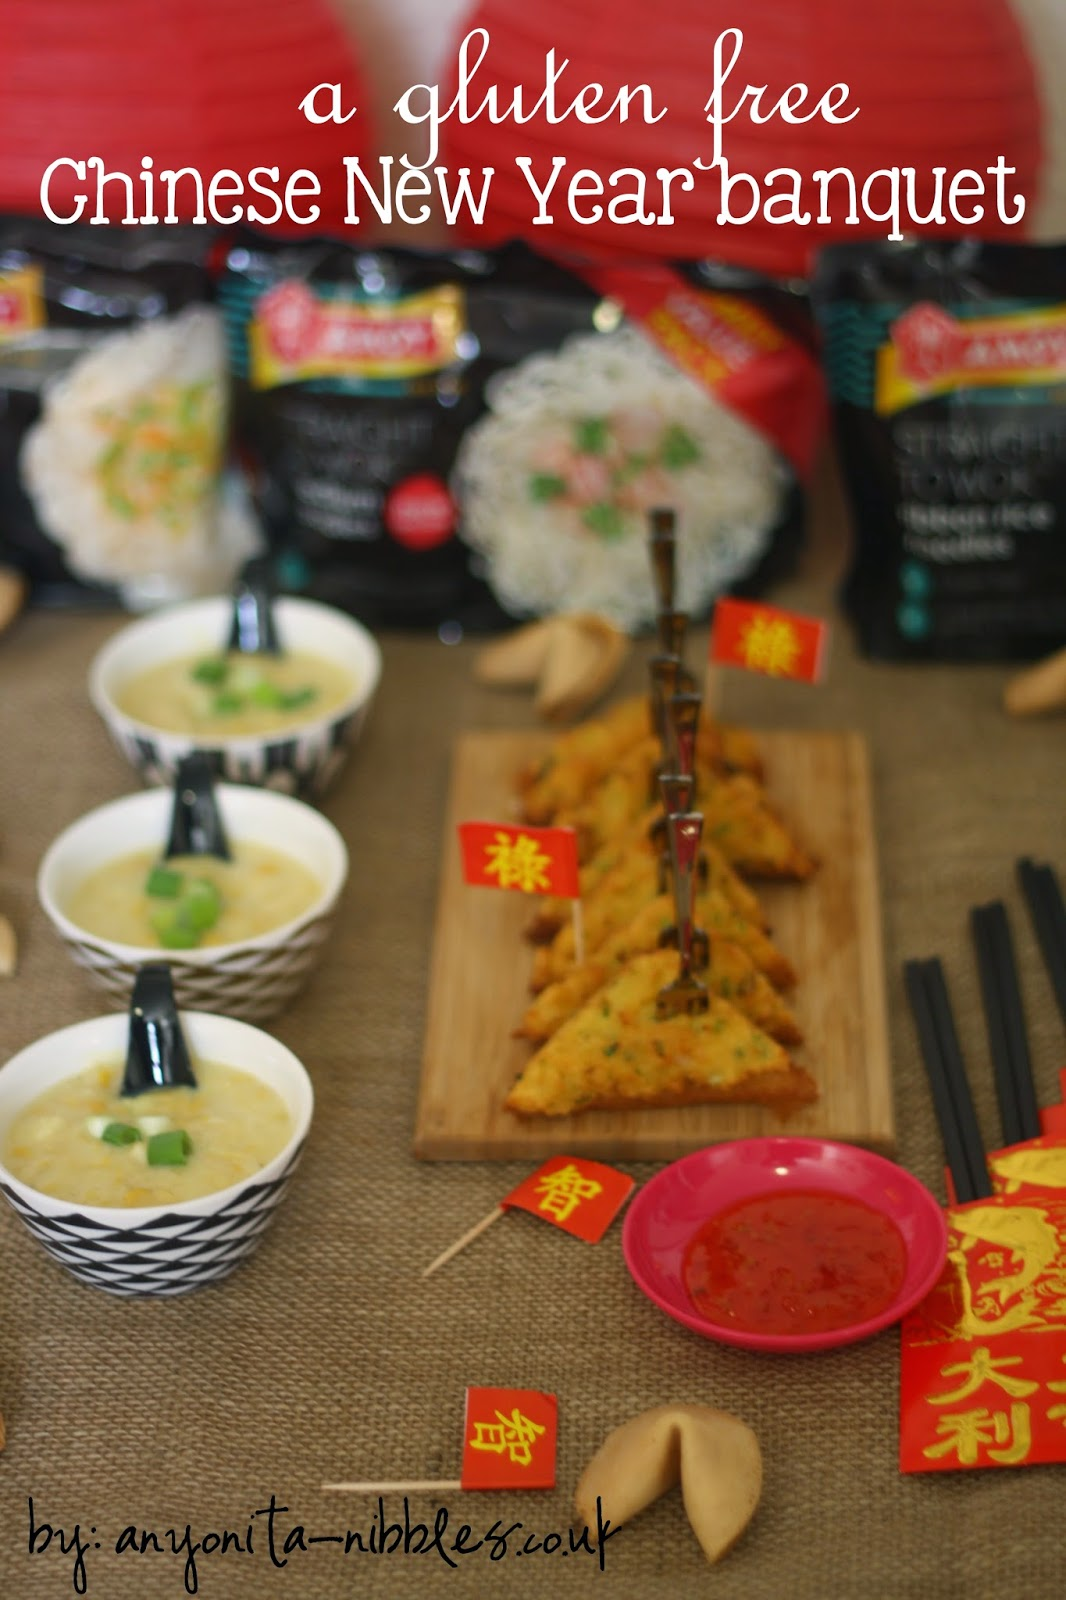 A Gluten Free Chinese New Year Banquet from Anyonita-nibbles.co.uk